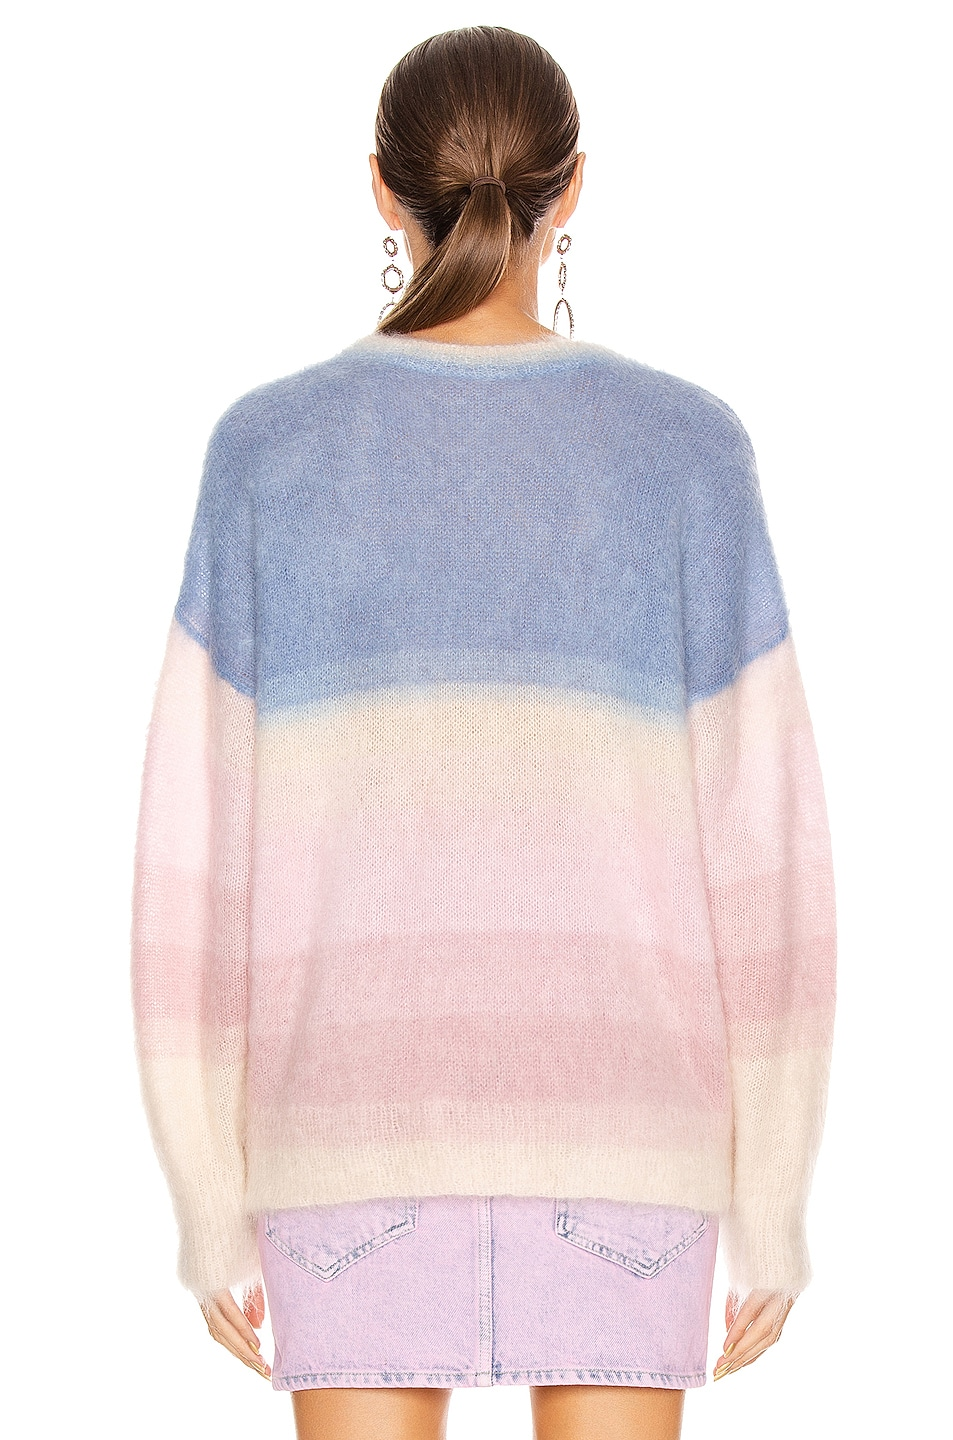 Image 4 of Isabel Marant Etoile Drussell Sweater in Blue